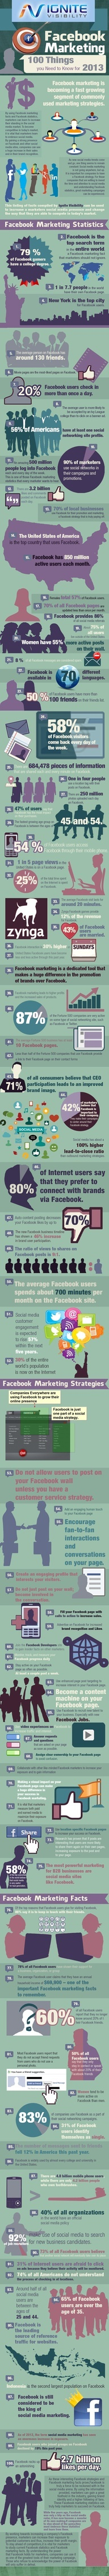 Facebook Marketing Infographic: 100 Things you Need to Know for 2013